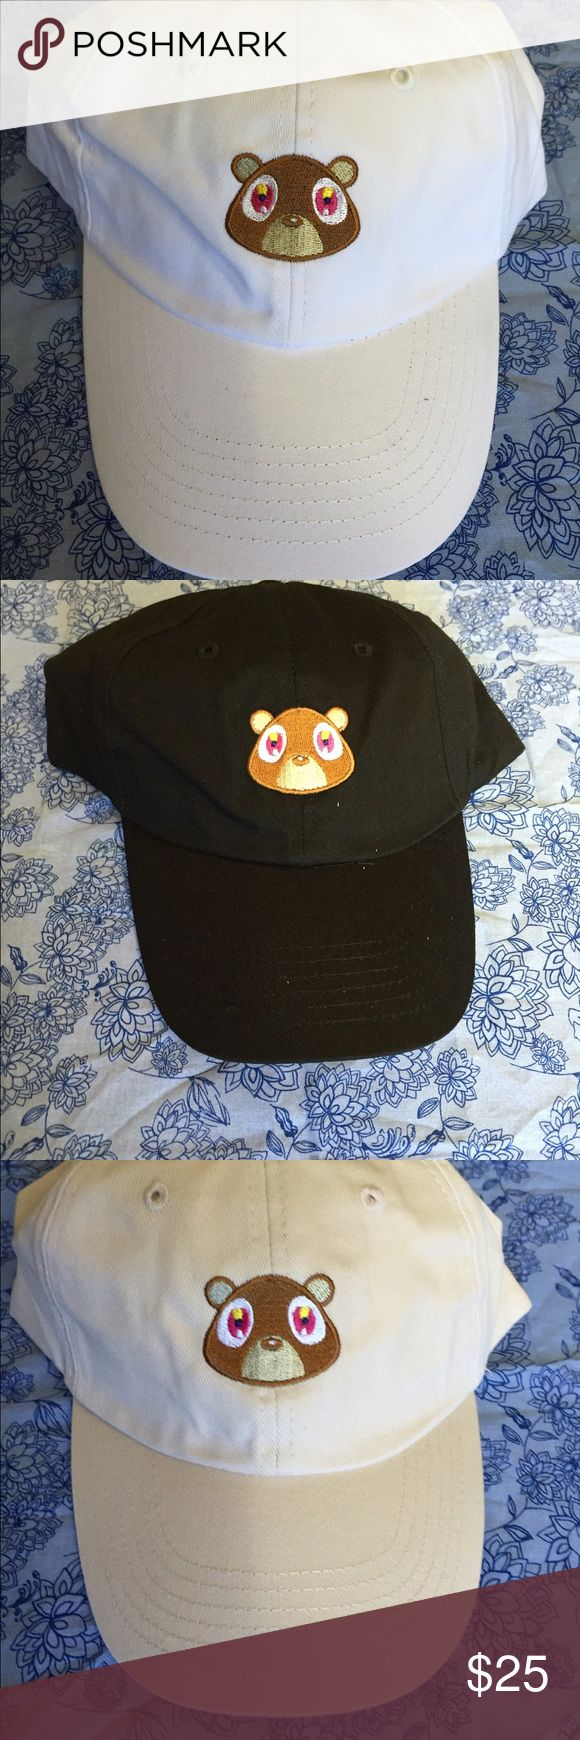 Kanye West Dad Hats We sell hats Accessories Hats